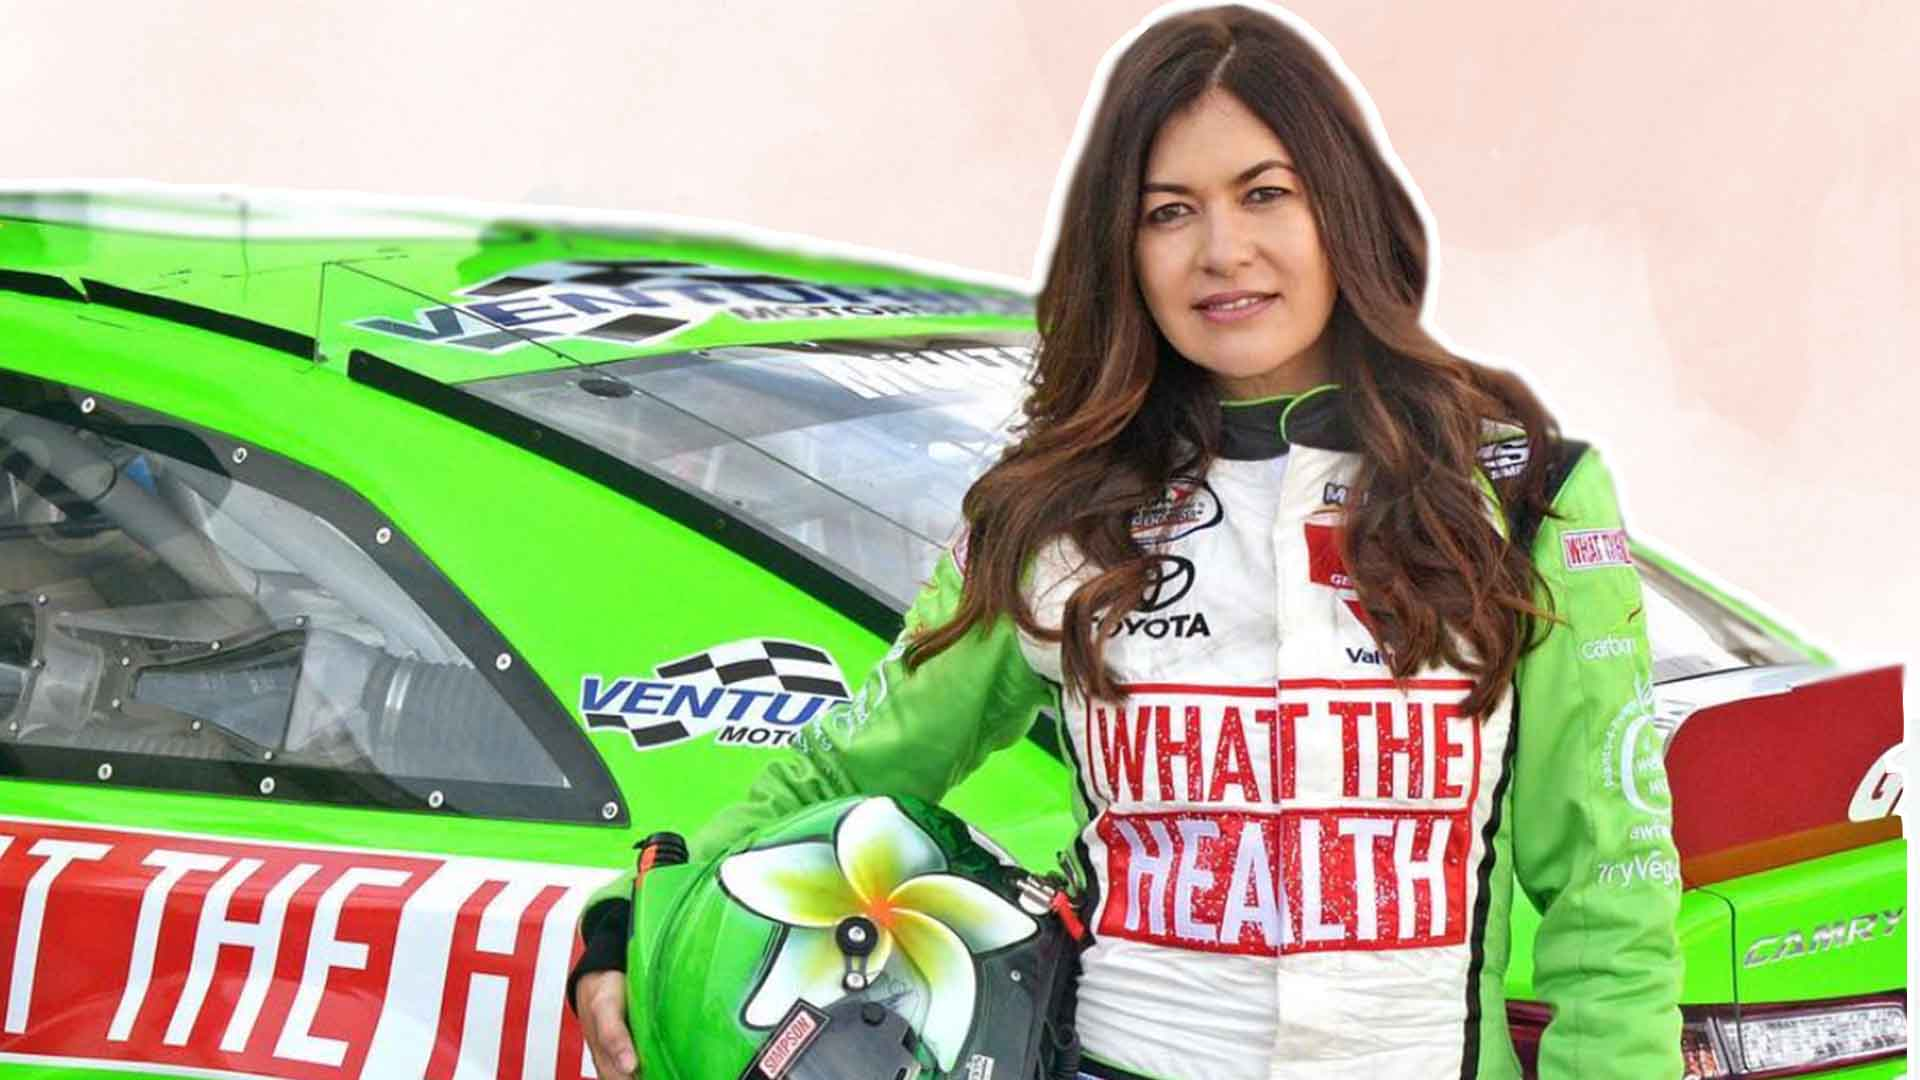 This Race Car Driver Is VEGAN AF